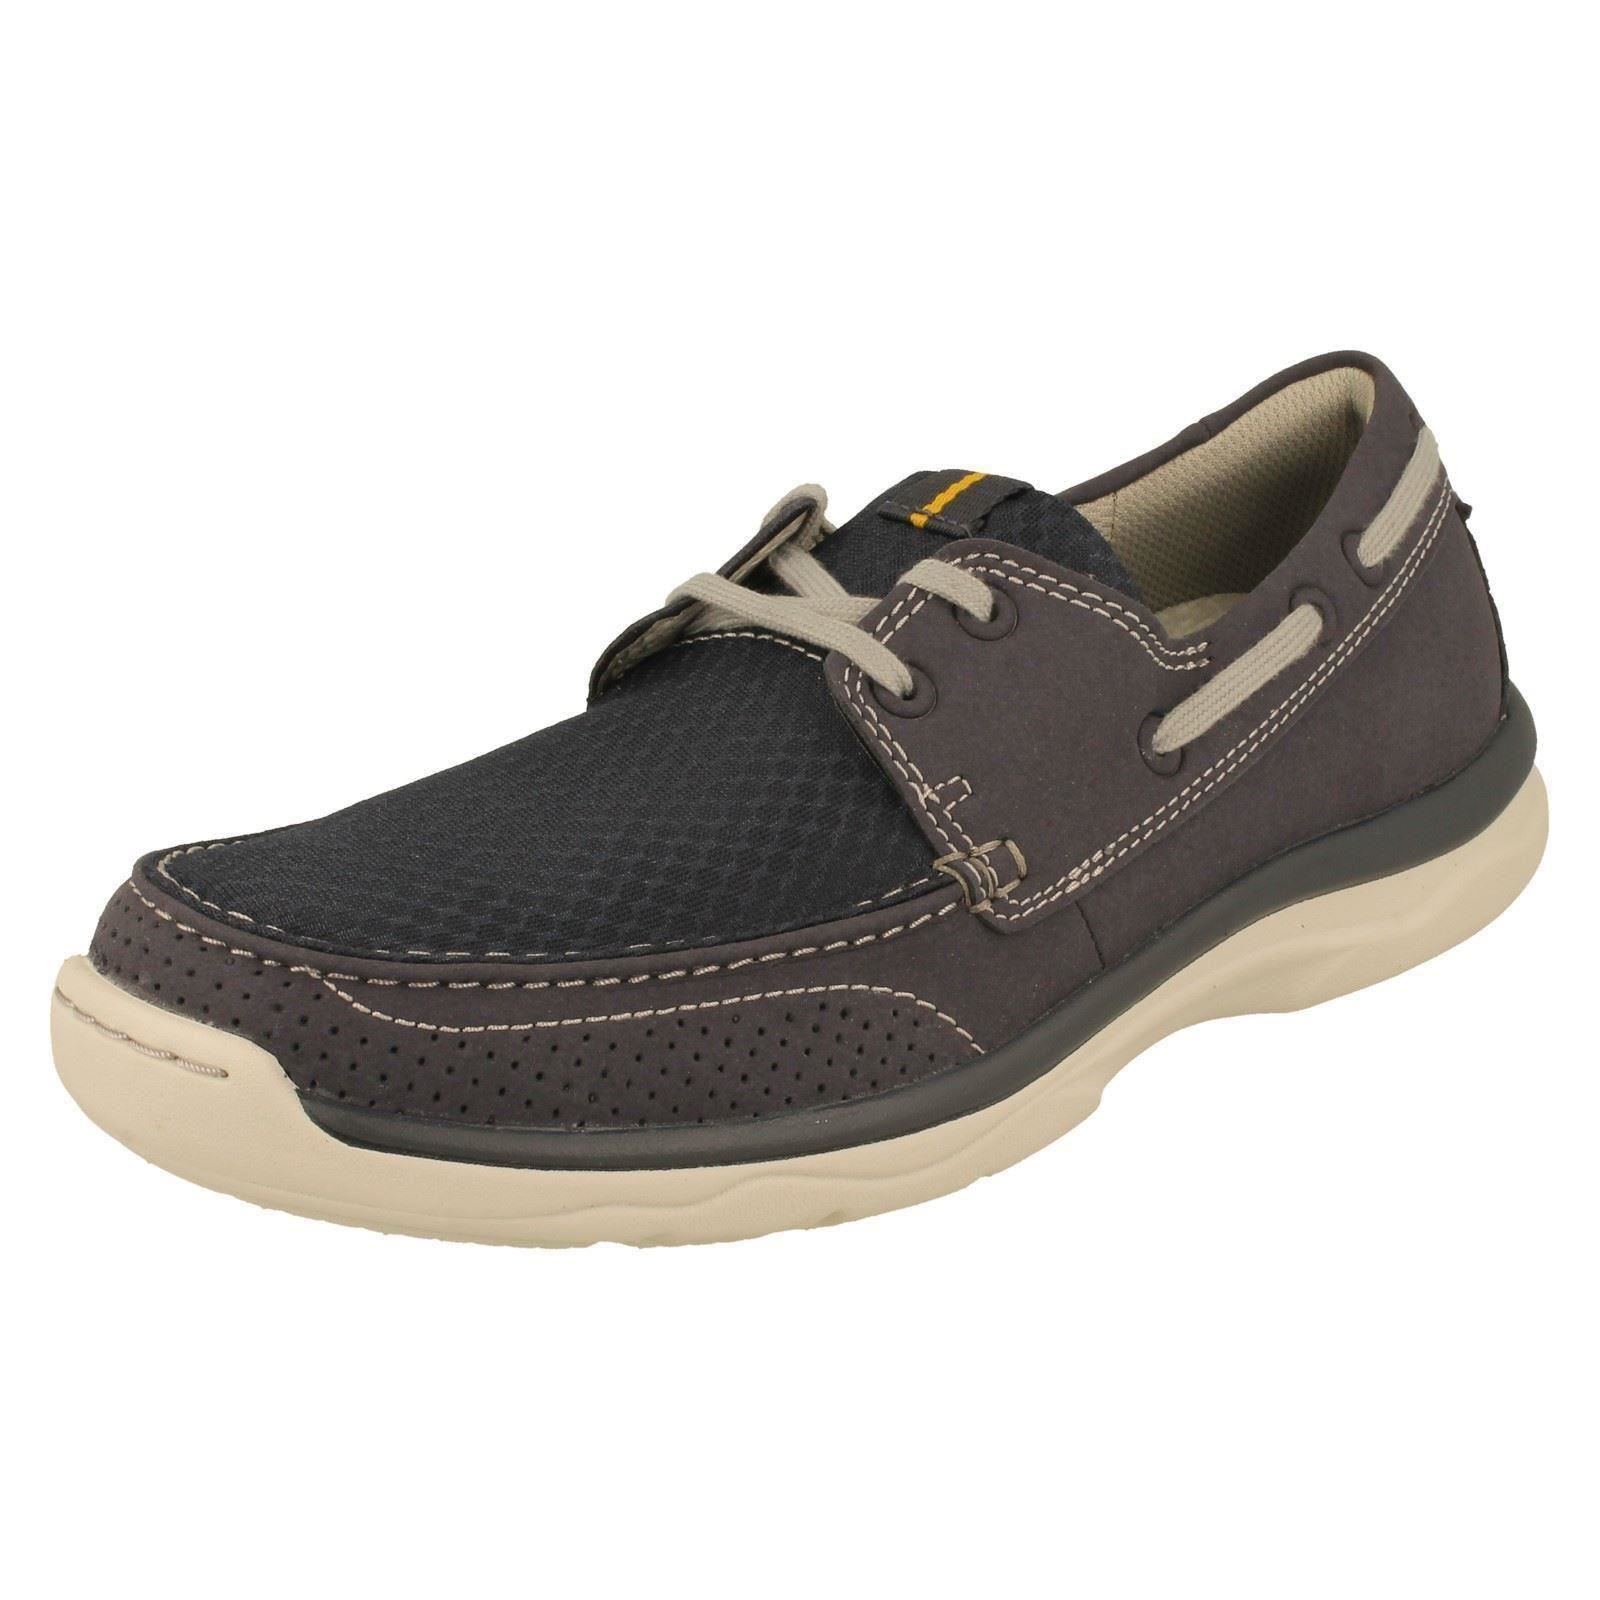 Clarks Casual Shoes Label Marcus Edge -W -W Edge 442dbb